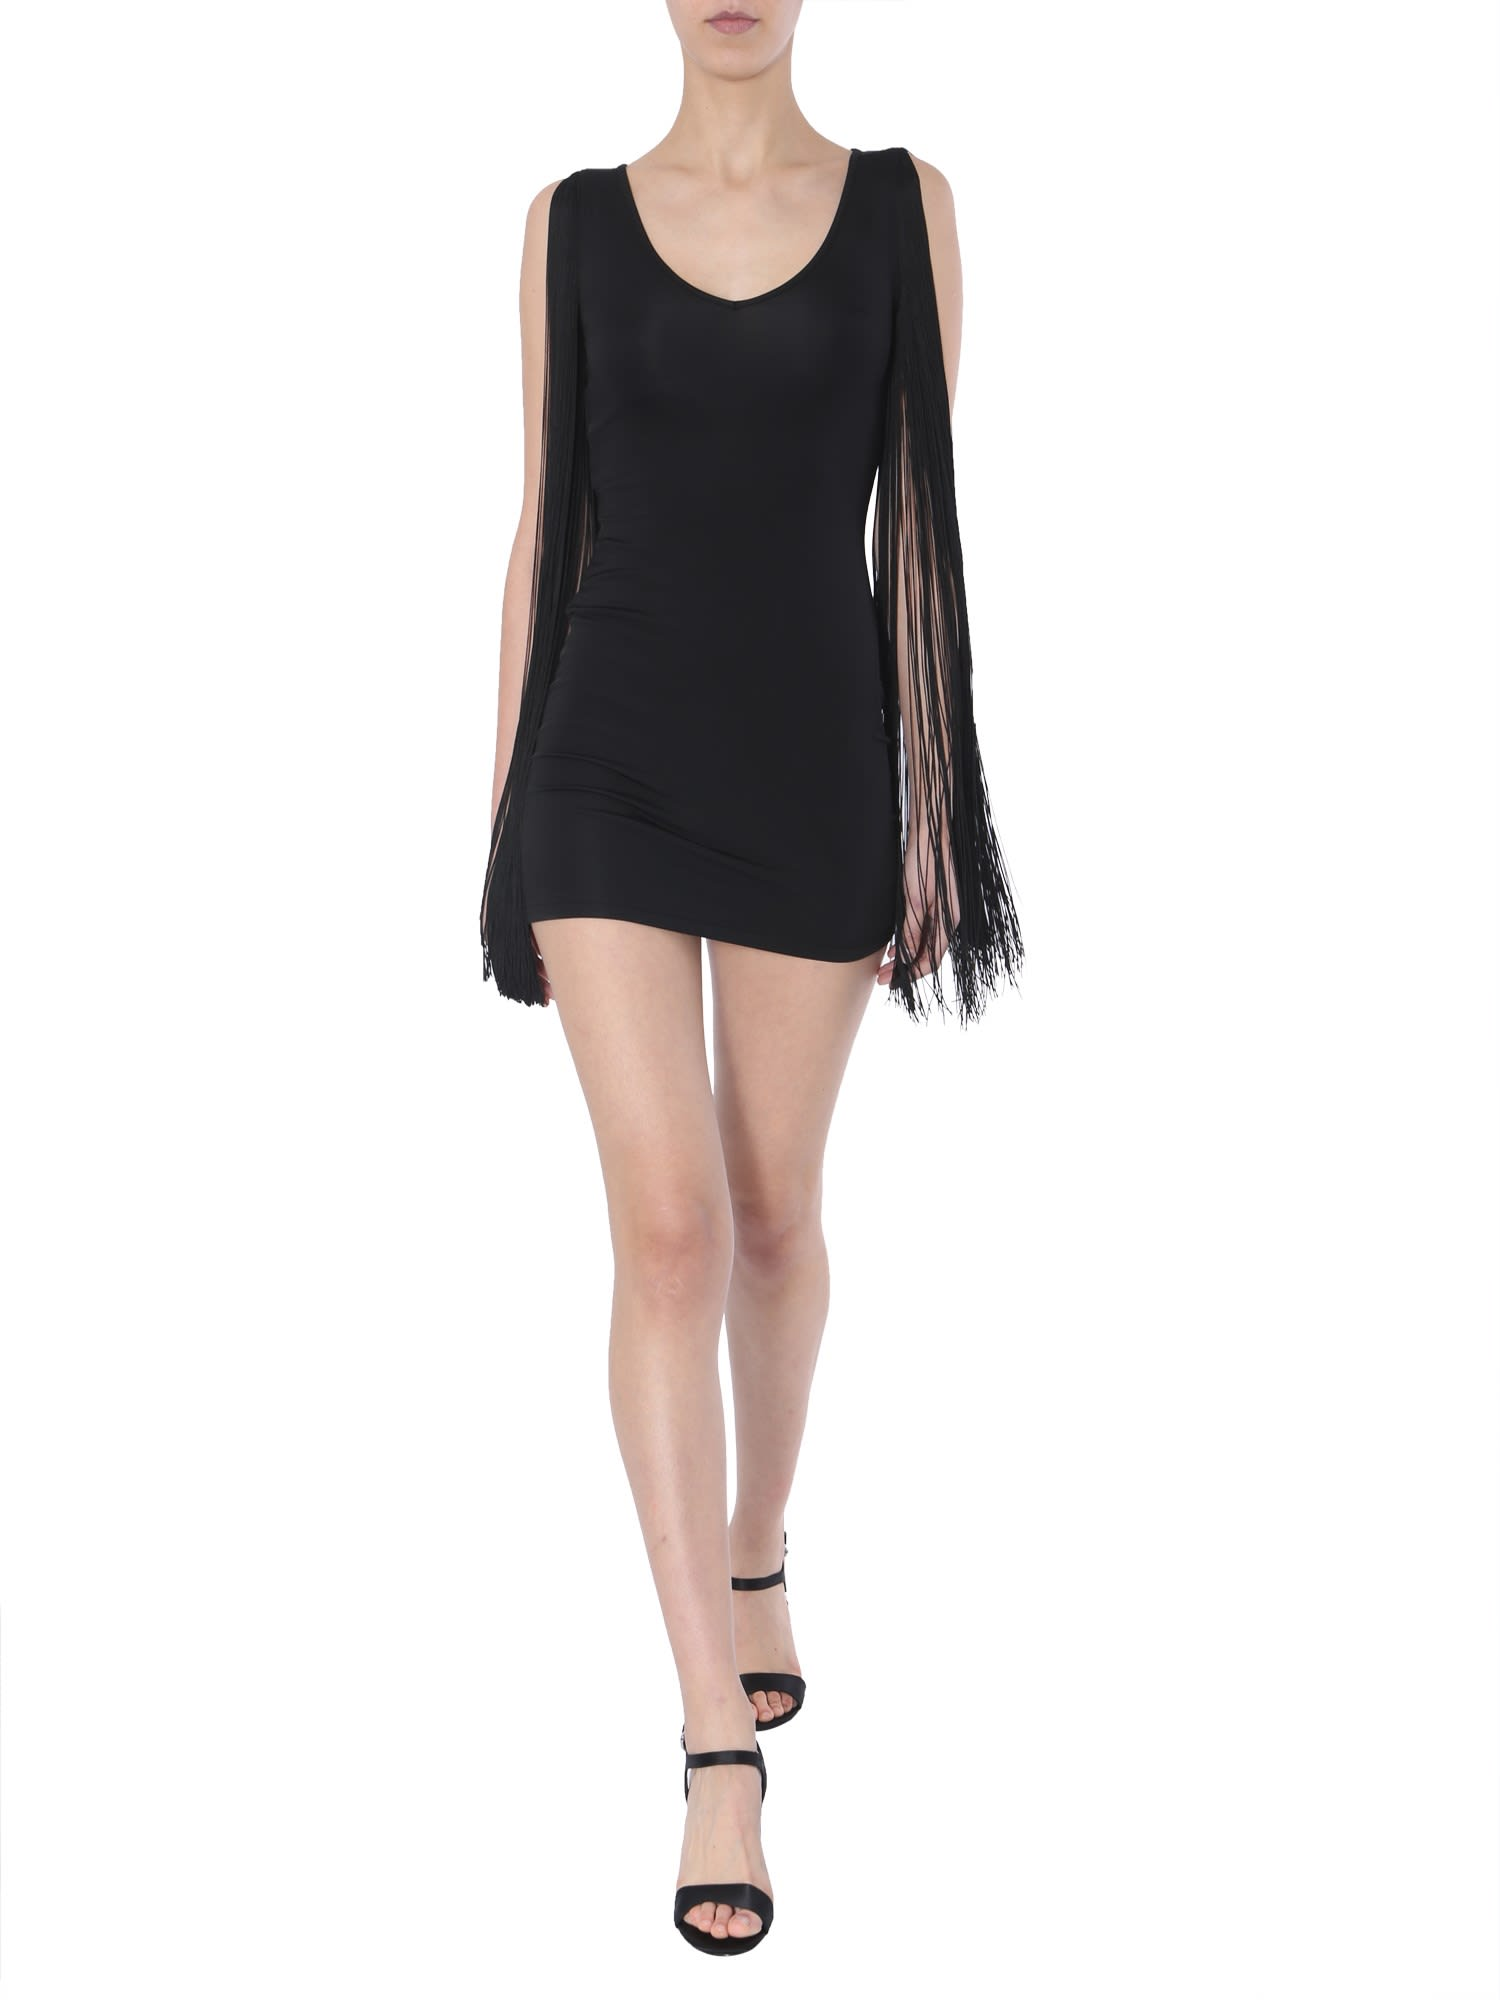 Moschino Short Dress With Fringes